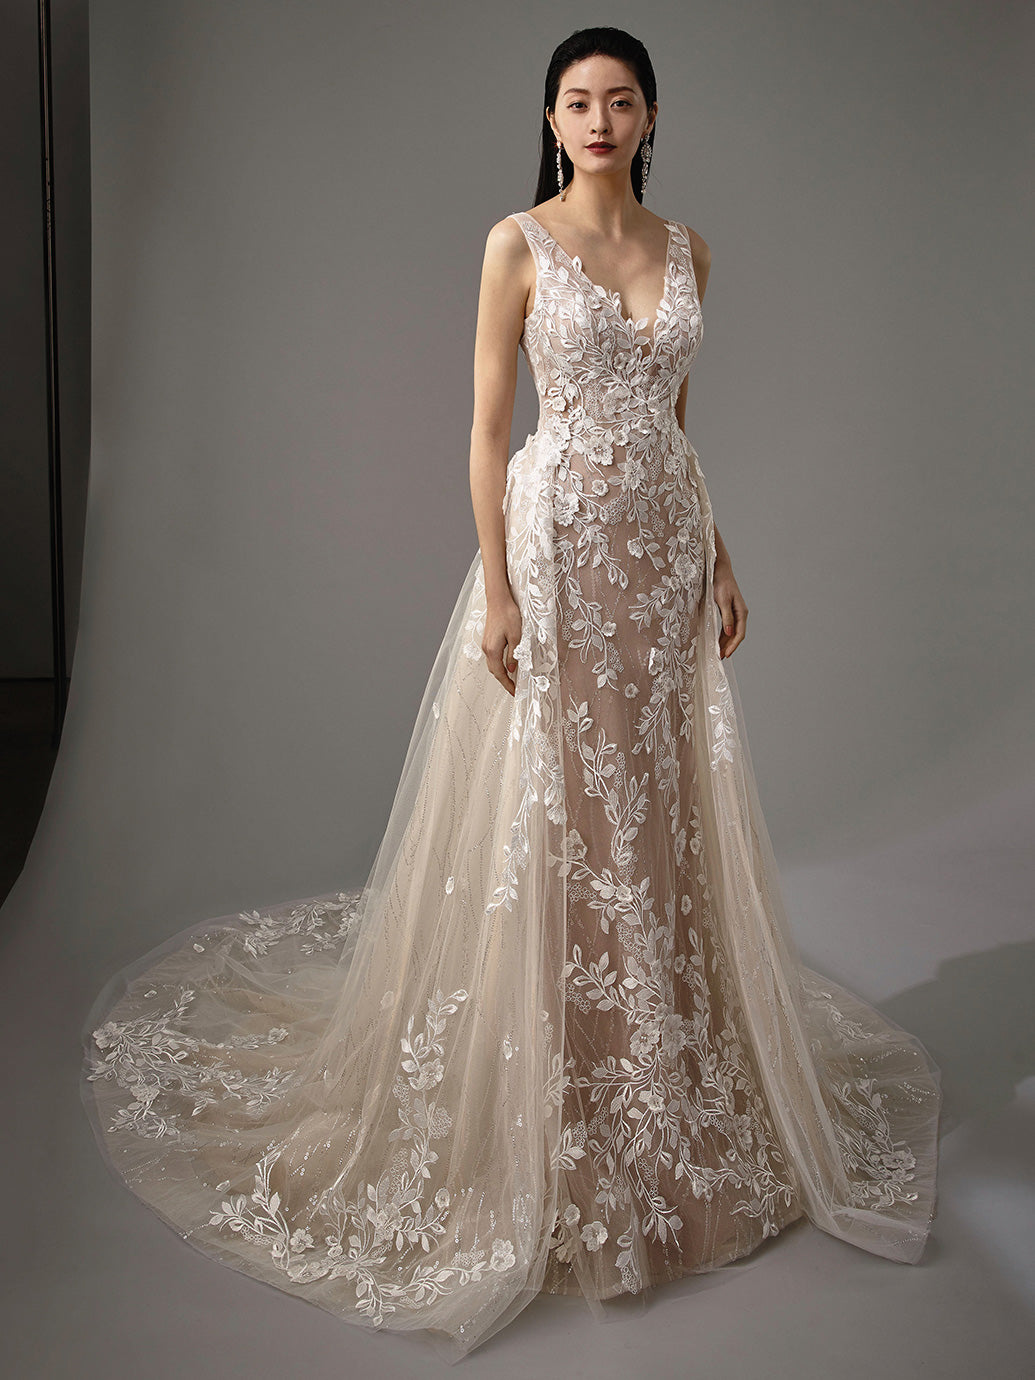 Mai - Coming Soon, Gown, Blue by Enzoani - Eternal Bridal